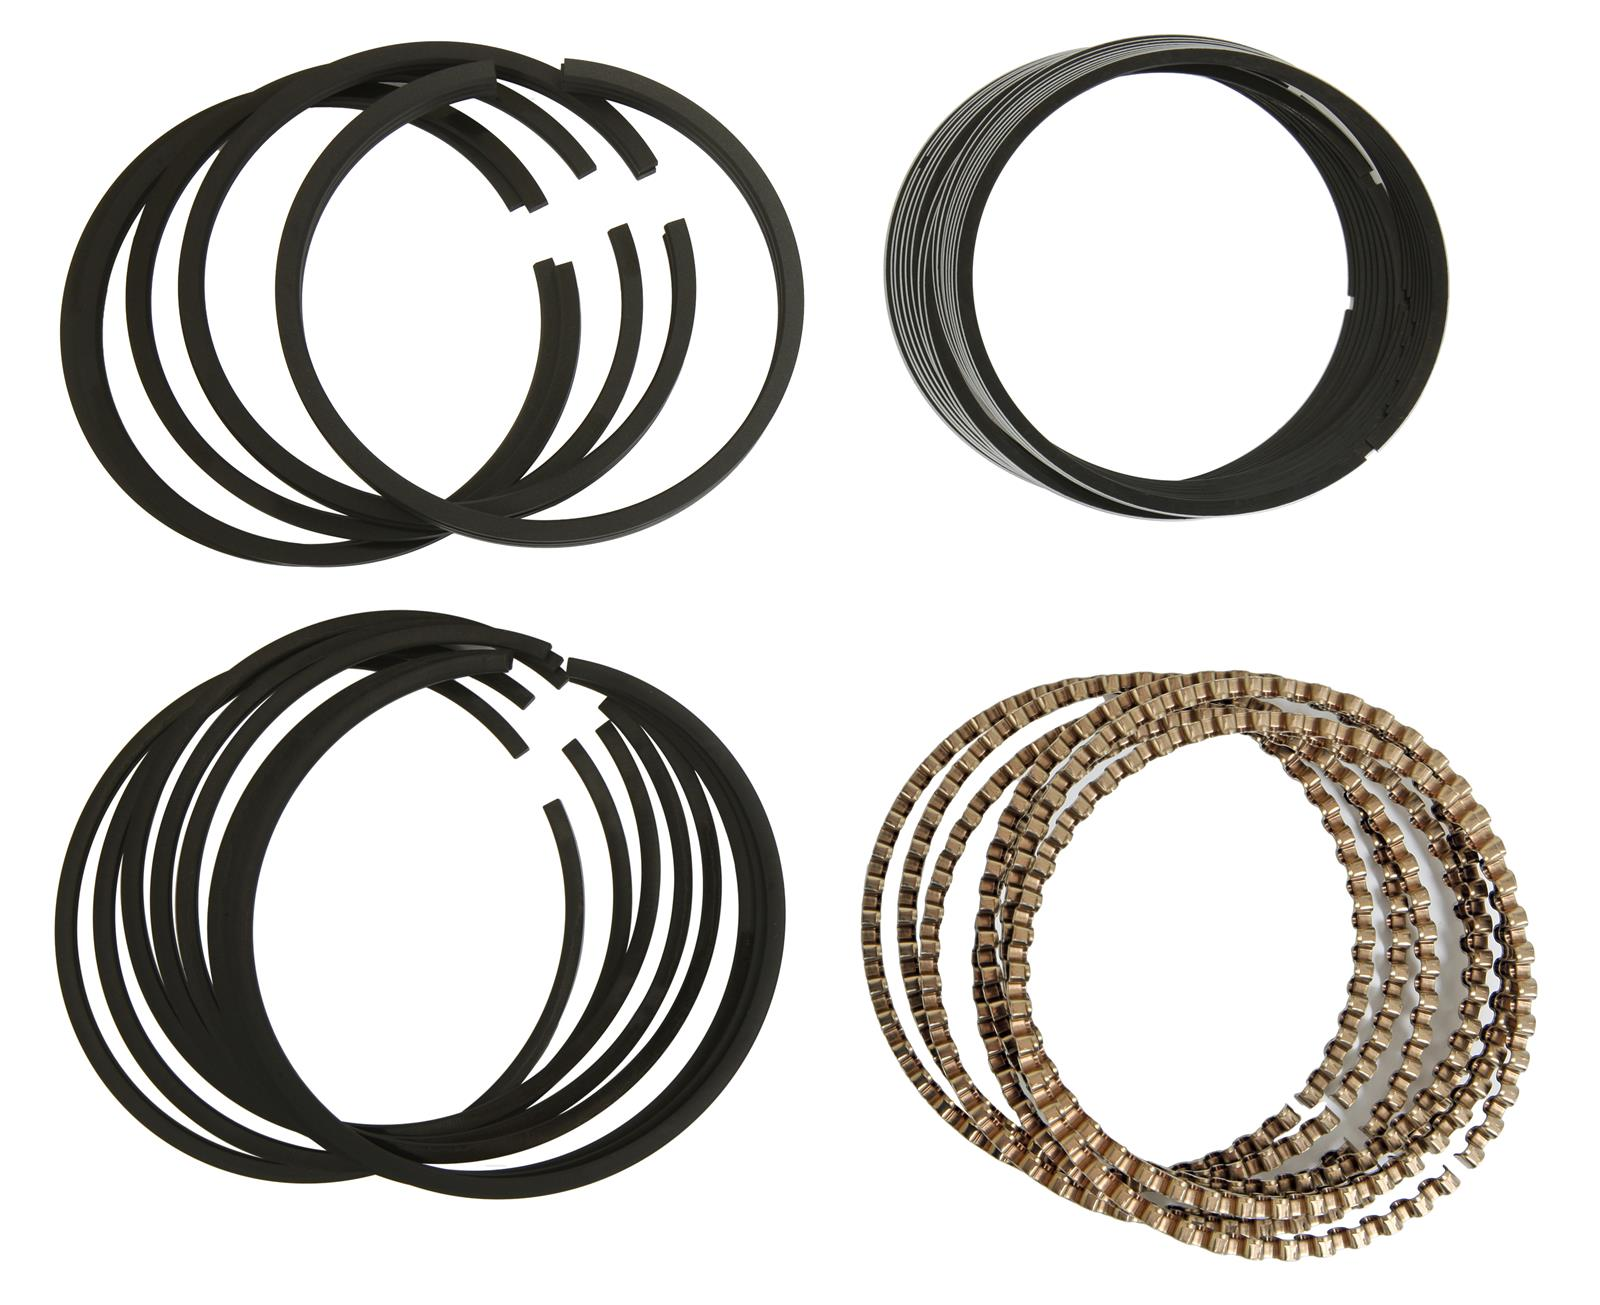 Hastings 2M641S Single Cylinder Piston Ring Set